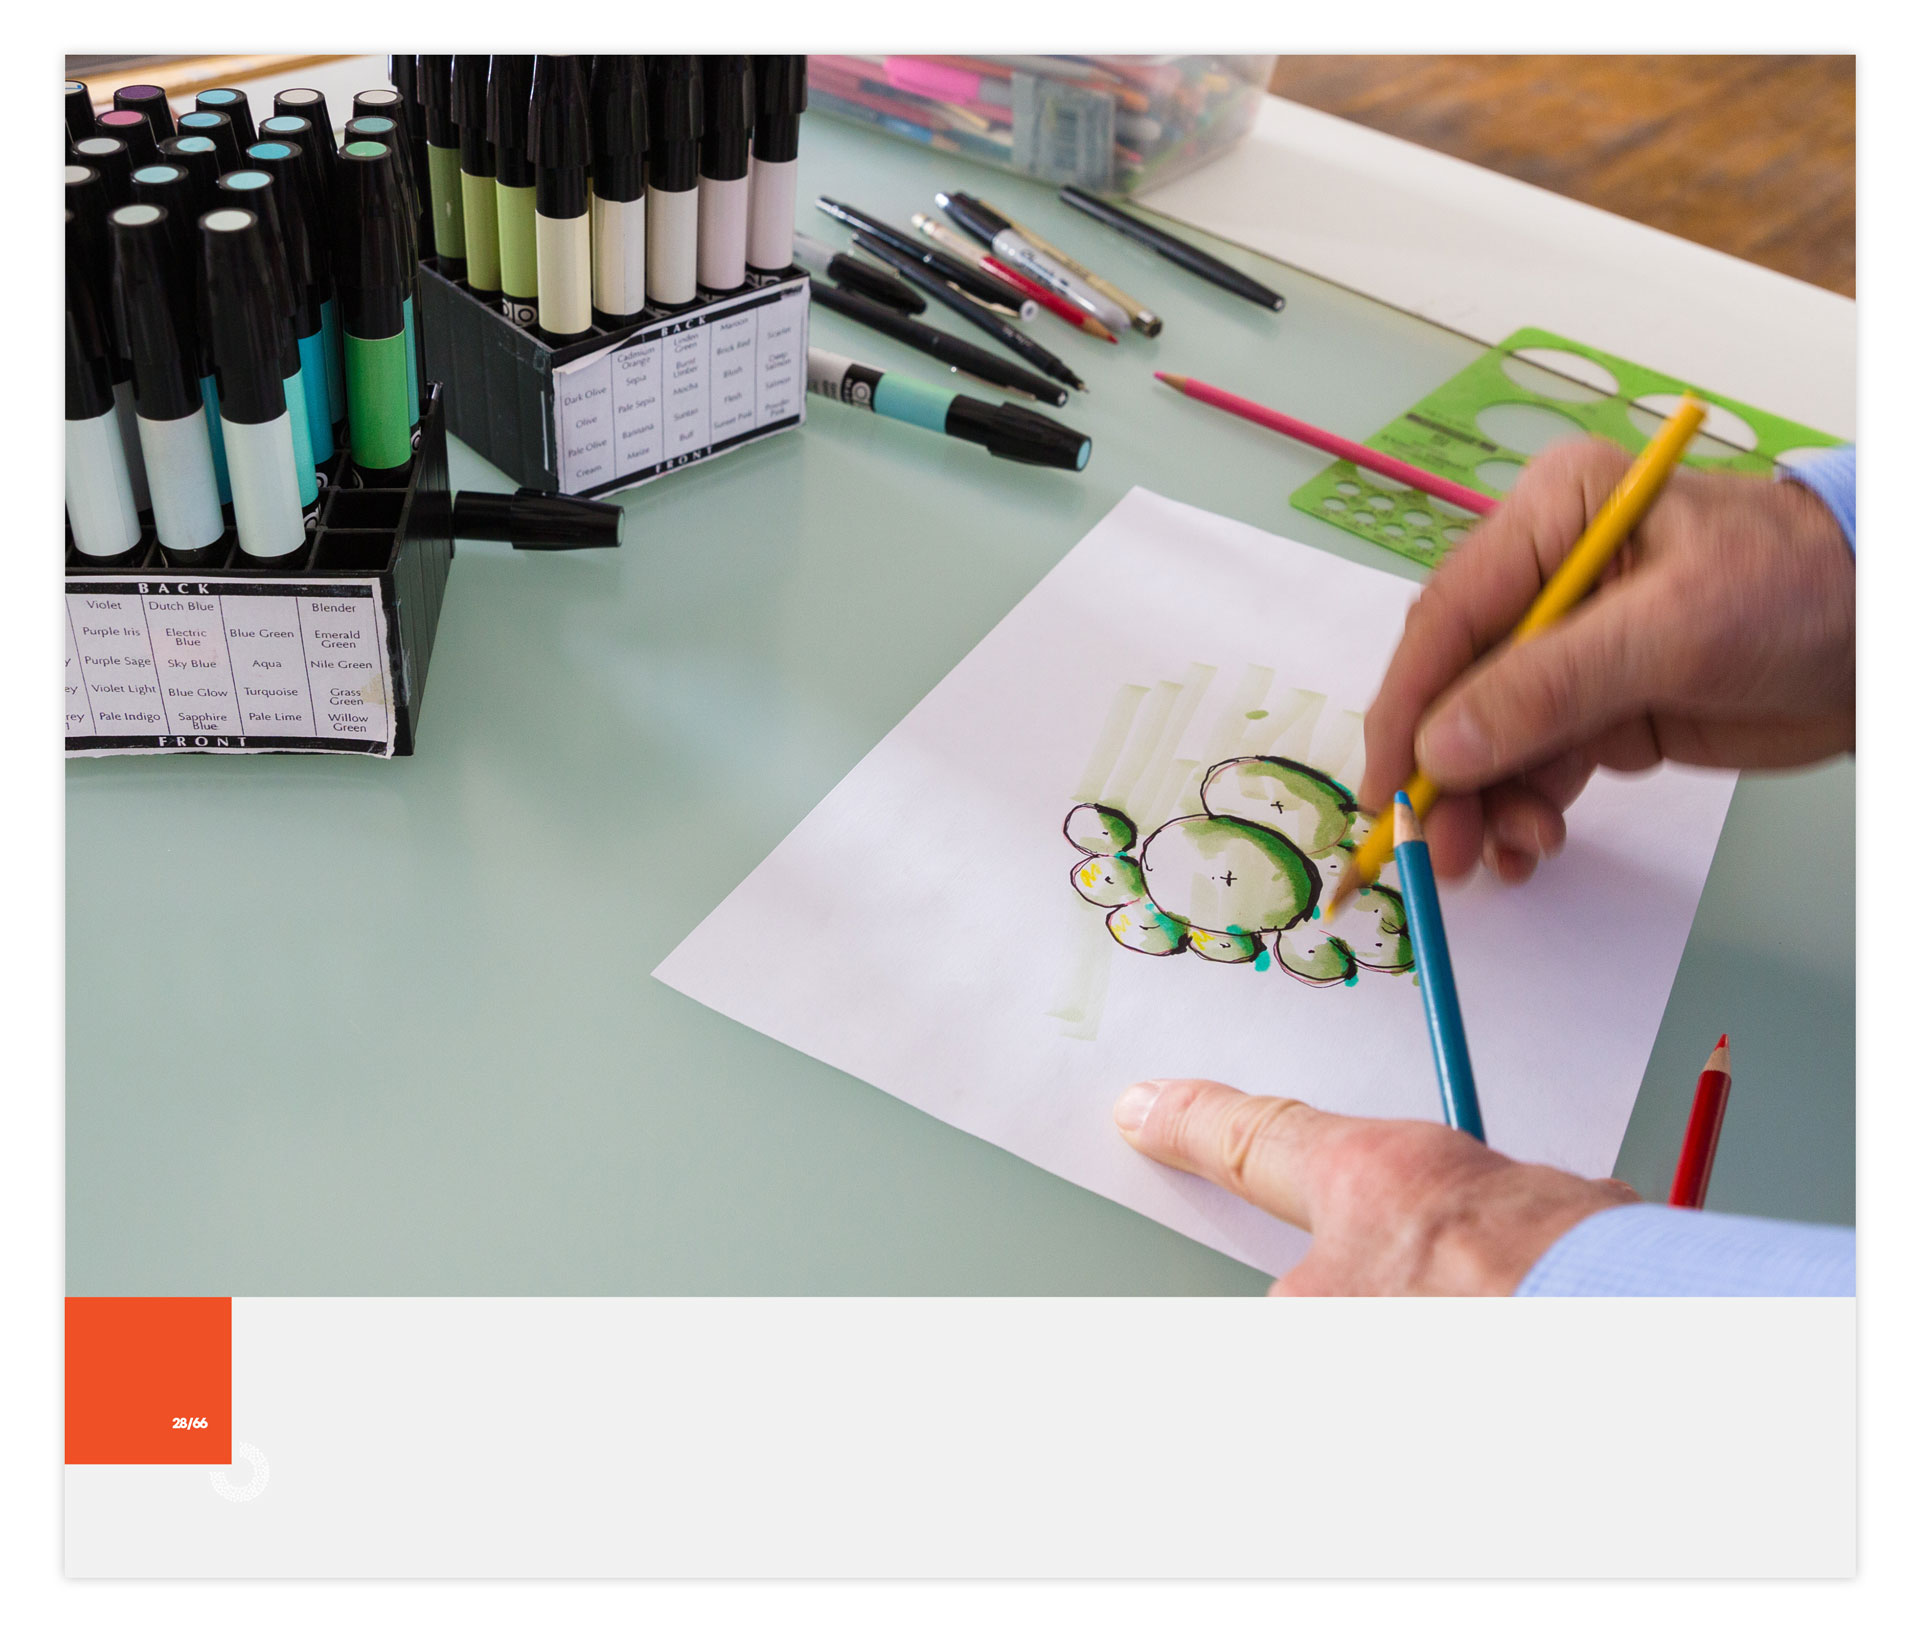 Man's hands drawing shrubs in architectural style and two boxes of markers on the table